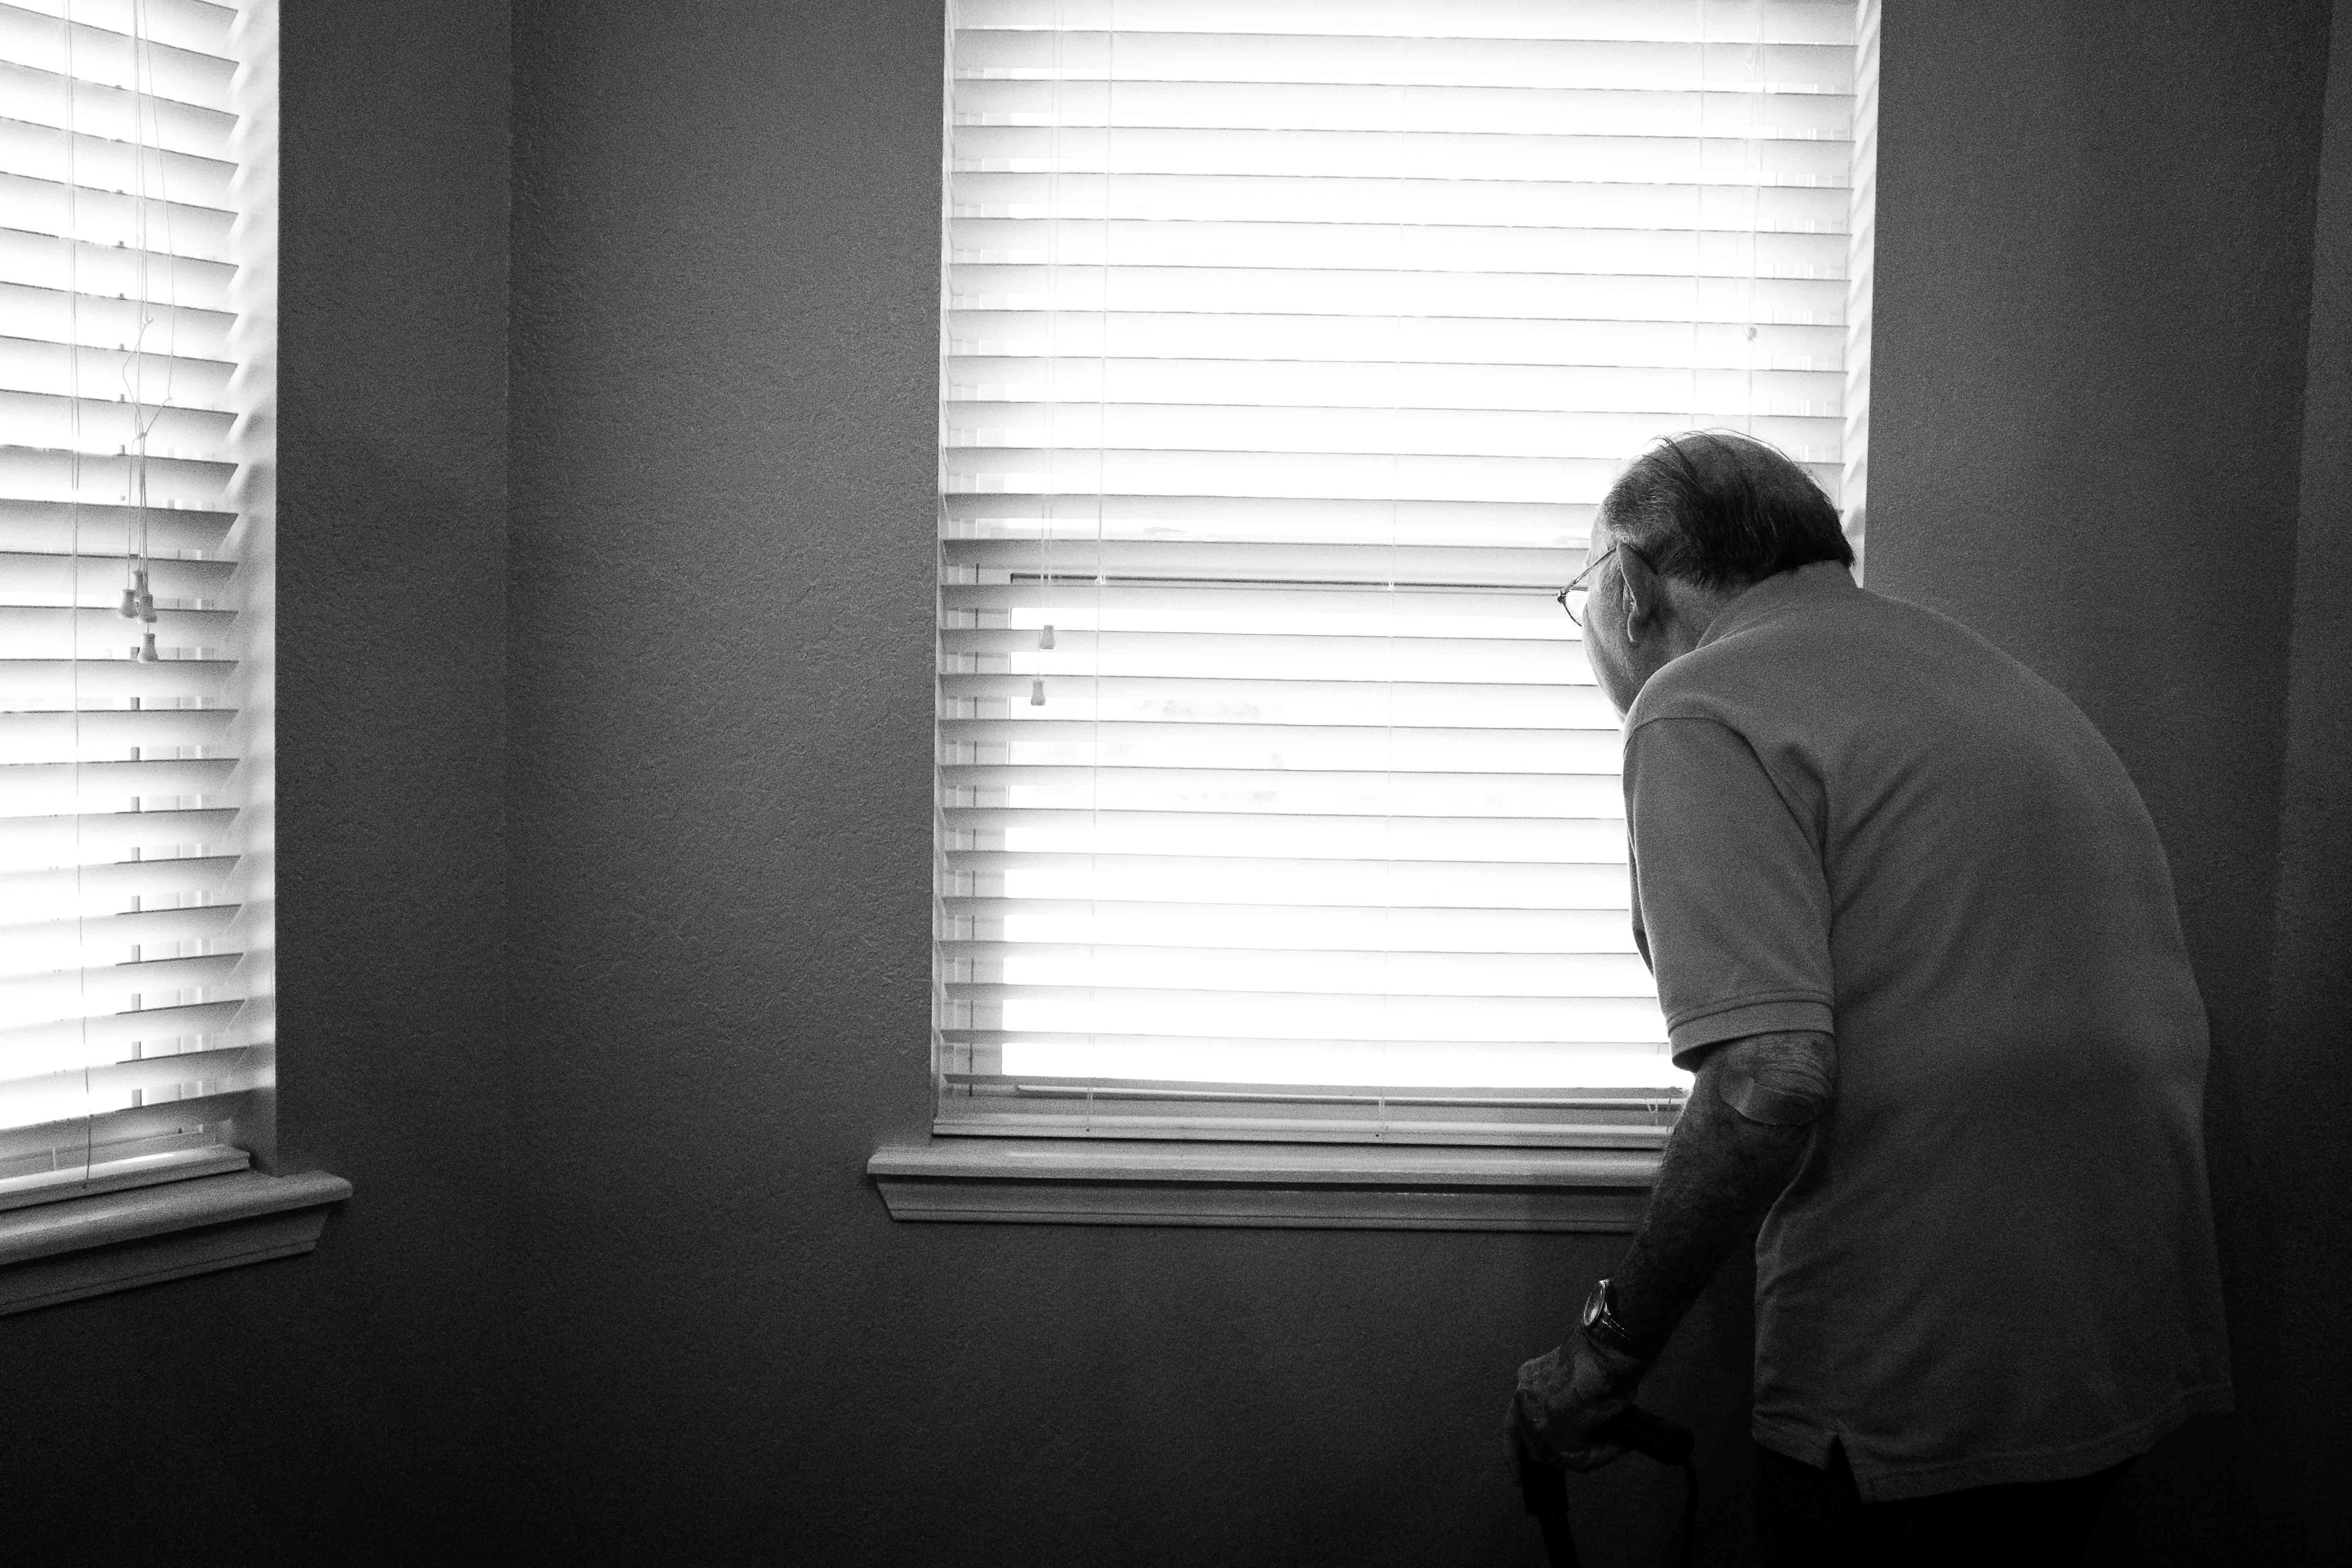 man standing inside white painted room